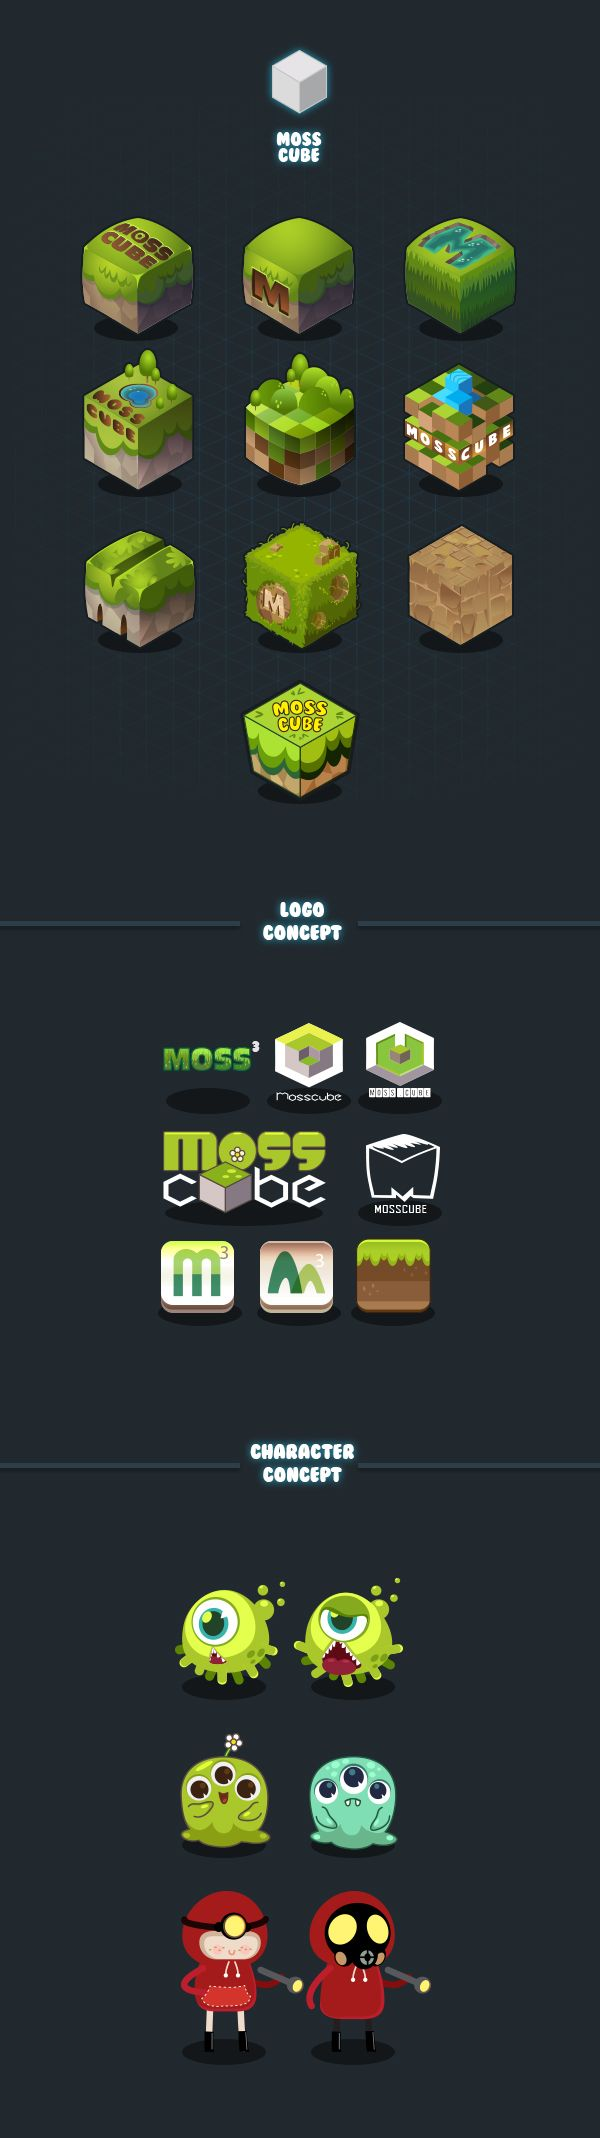 Mosscube Concepts on Behance